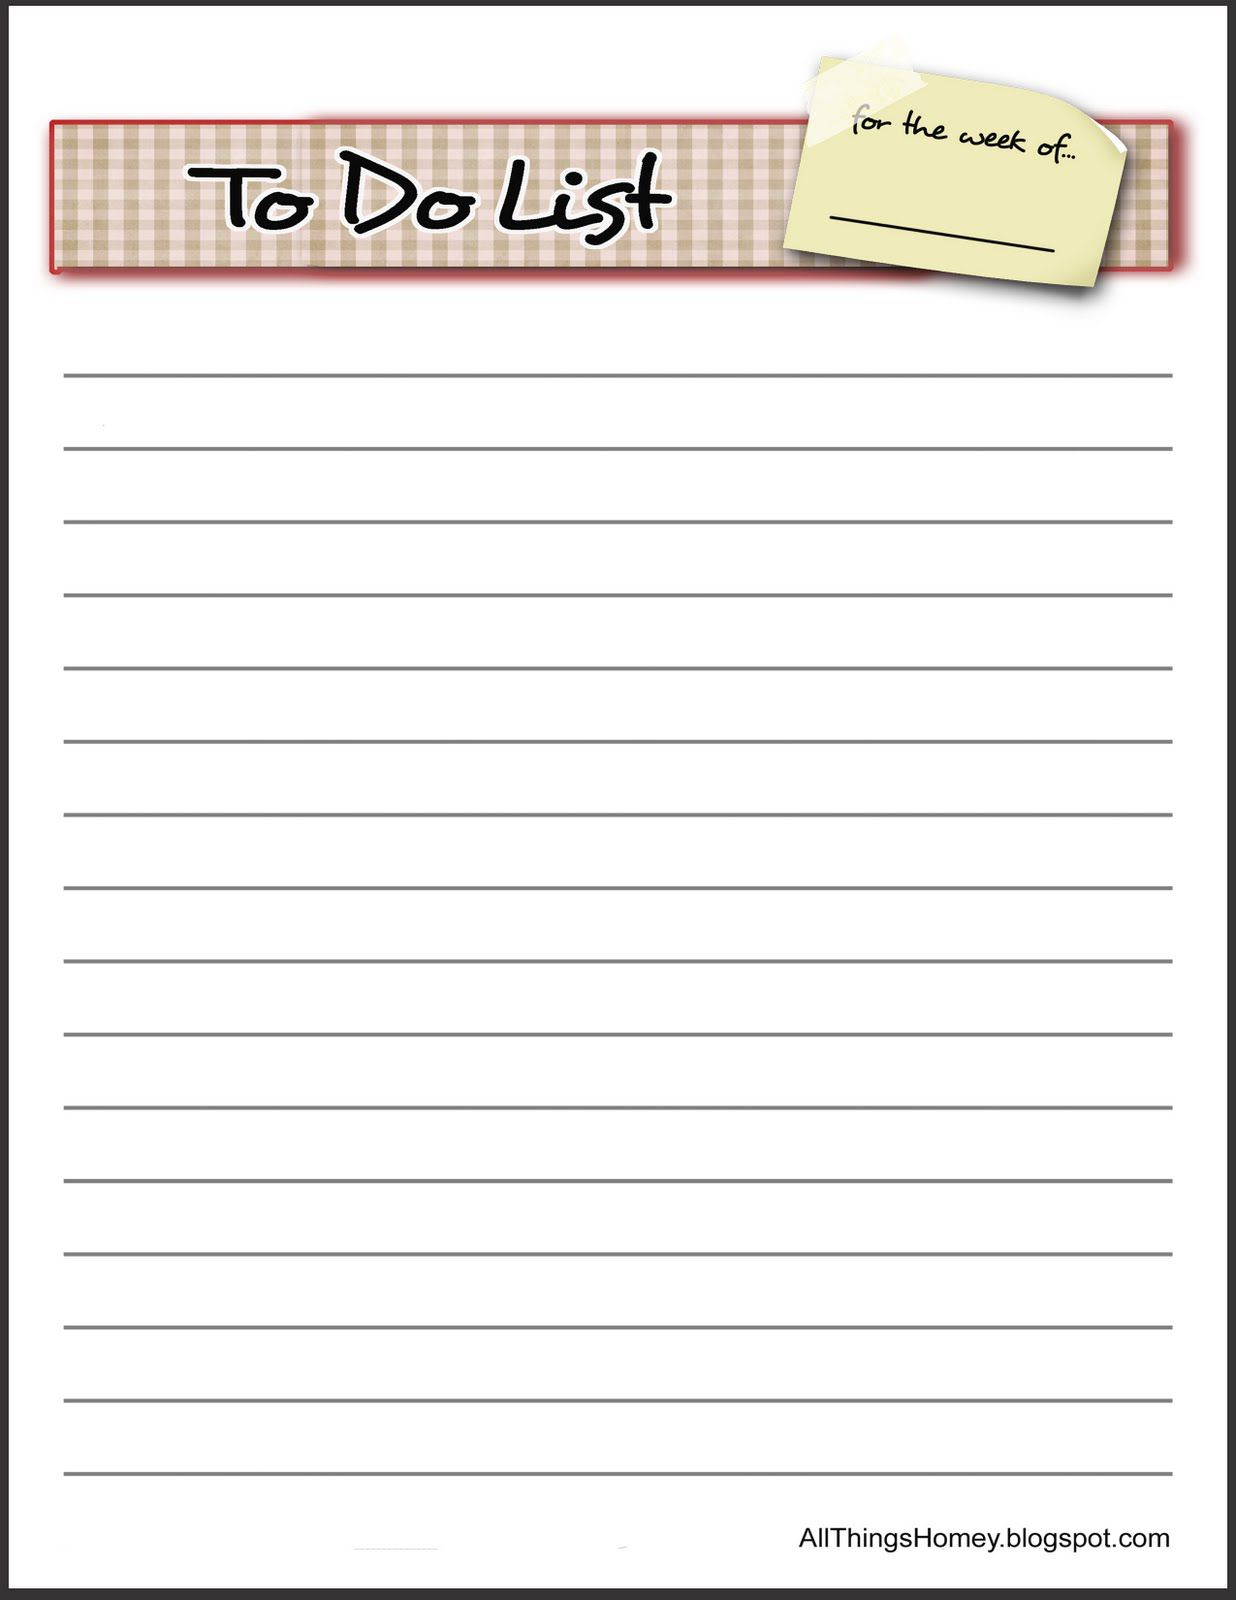 009 Awful To Do List Template Word High Def Full